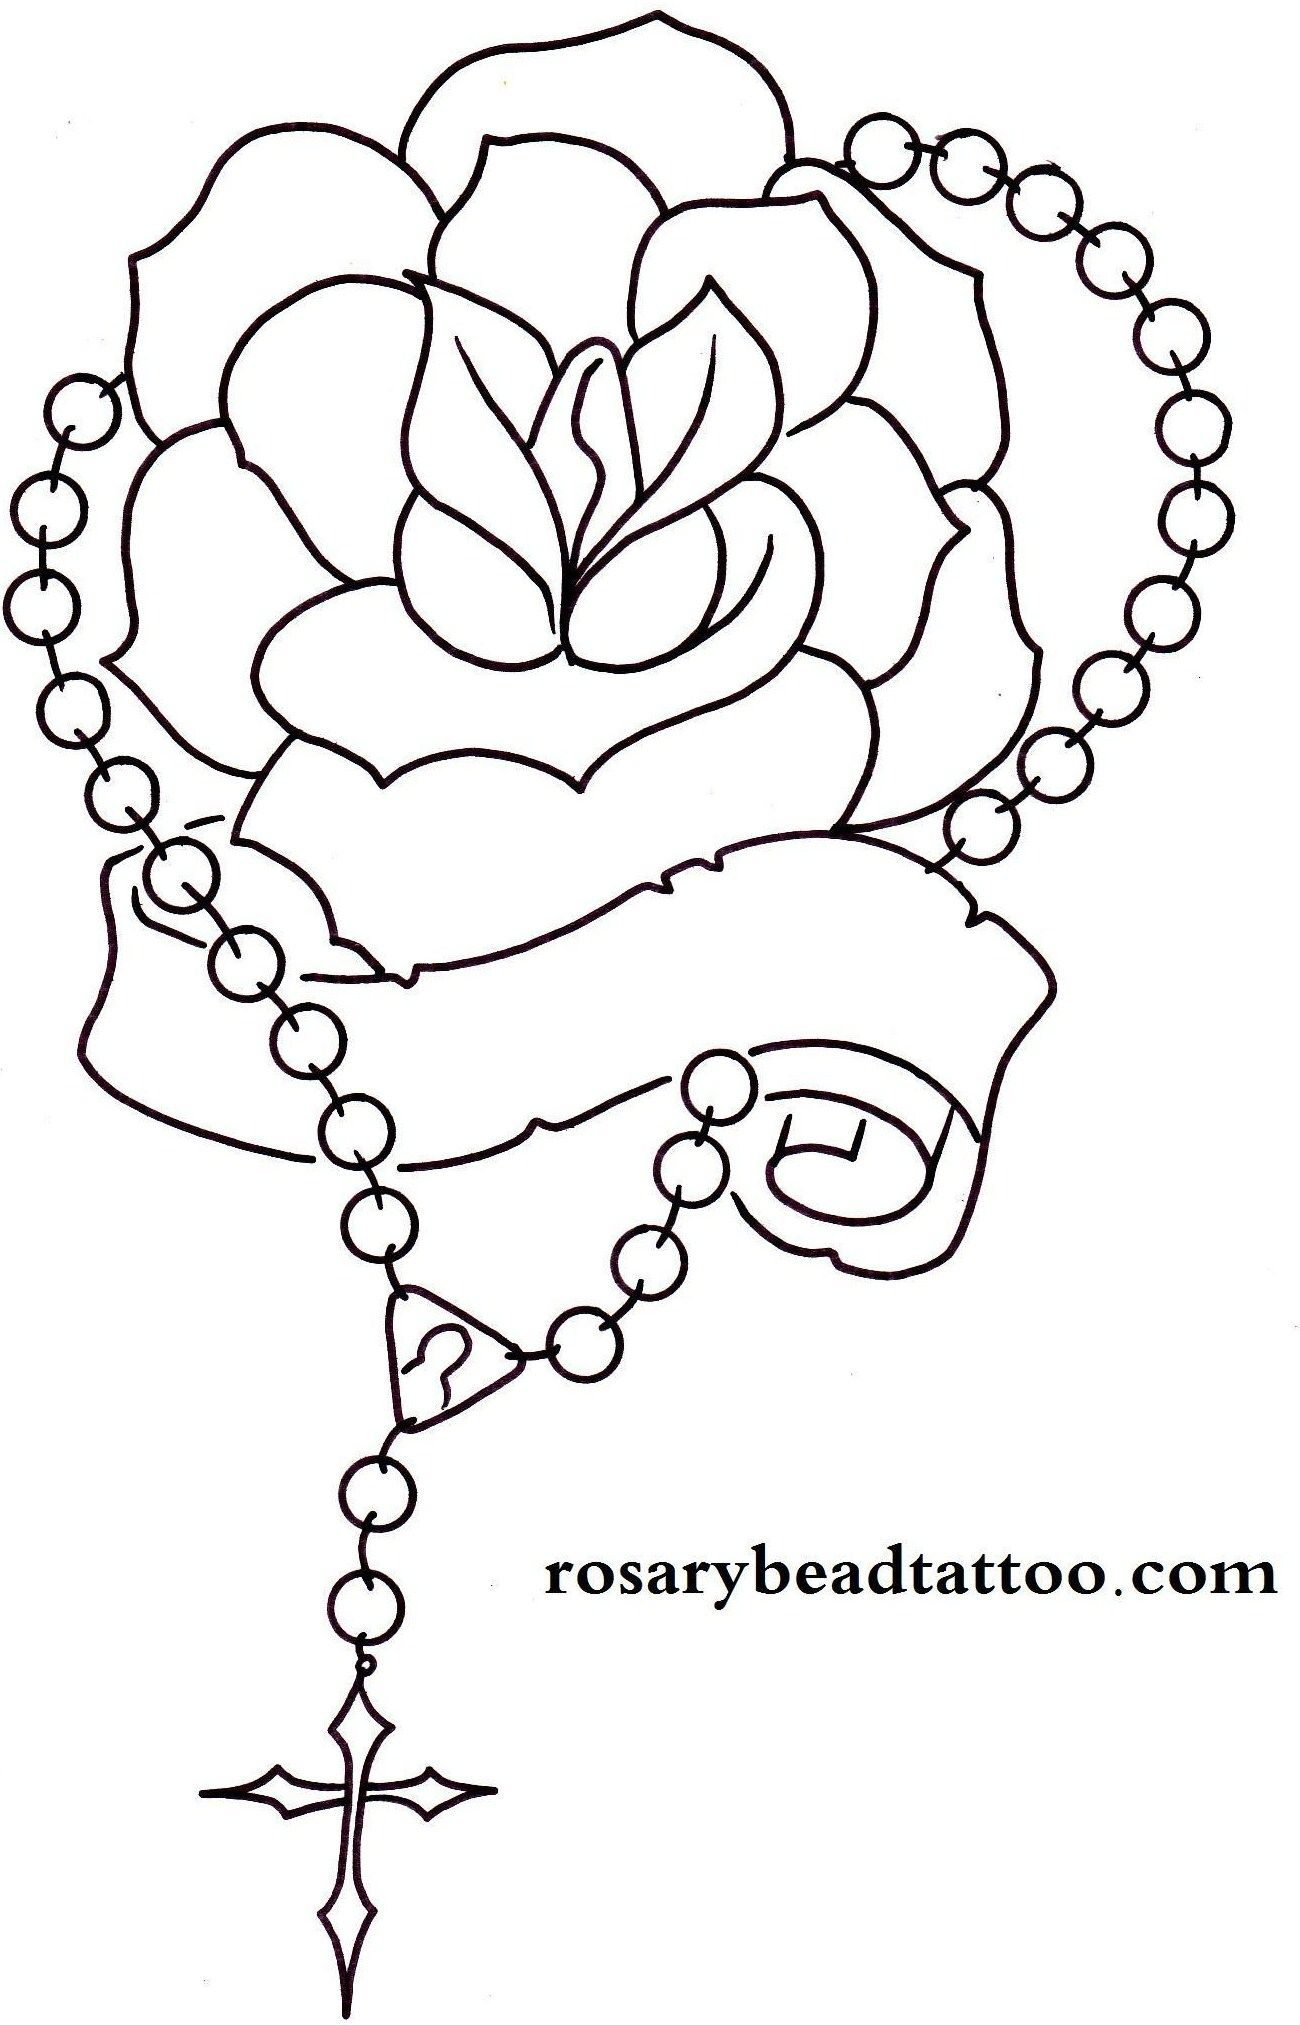 Rosary Drawings Rose Tattoobanner Tattoorosary Tattooname